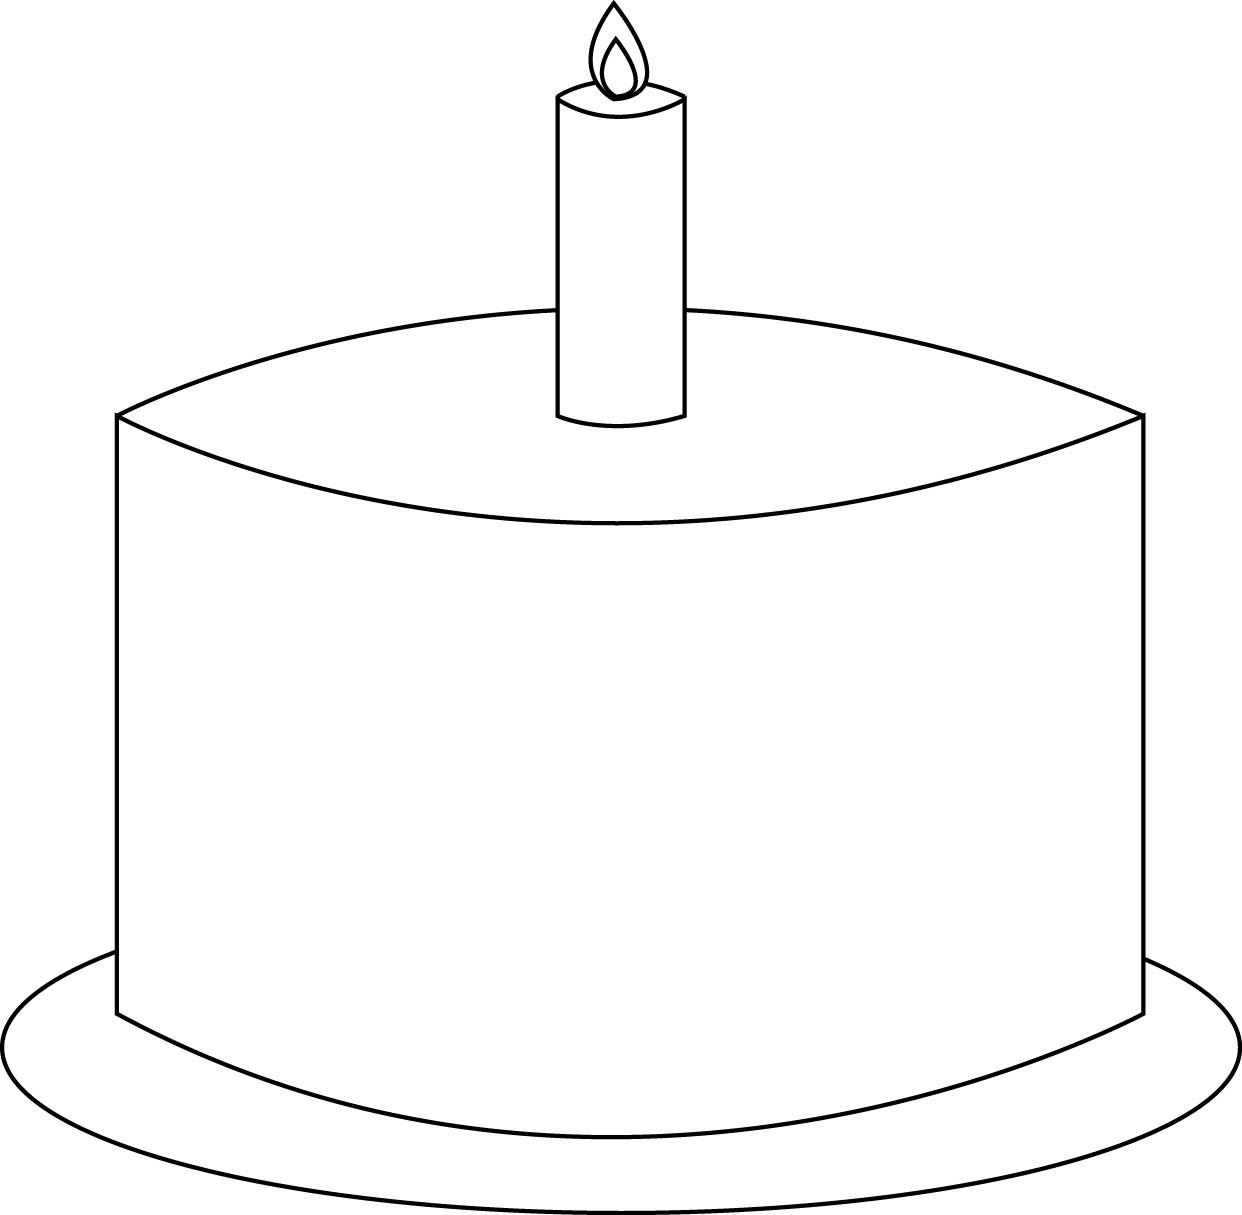 Best ideas about Birthday Cake Template . Save or Pin design process blog Project 3 Birthday Cake Assets Now.